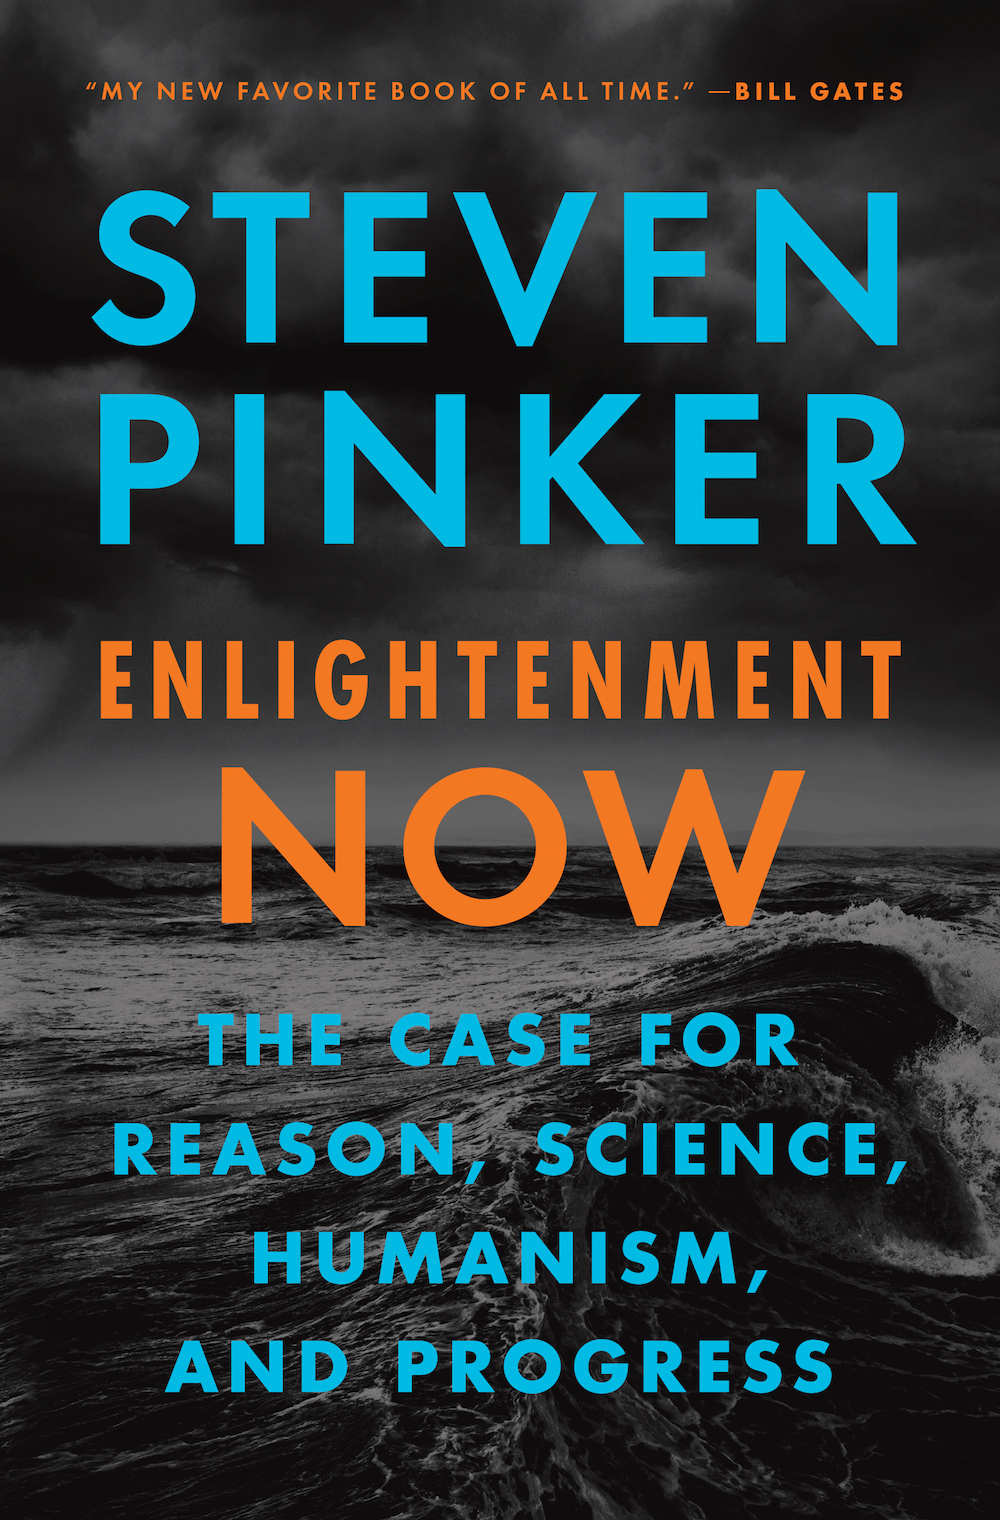 *Enlightenment Now: The Case for Reason, Science, Humanism, and Progress*